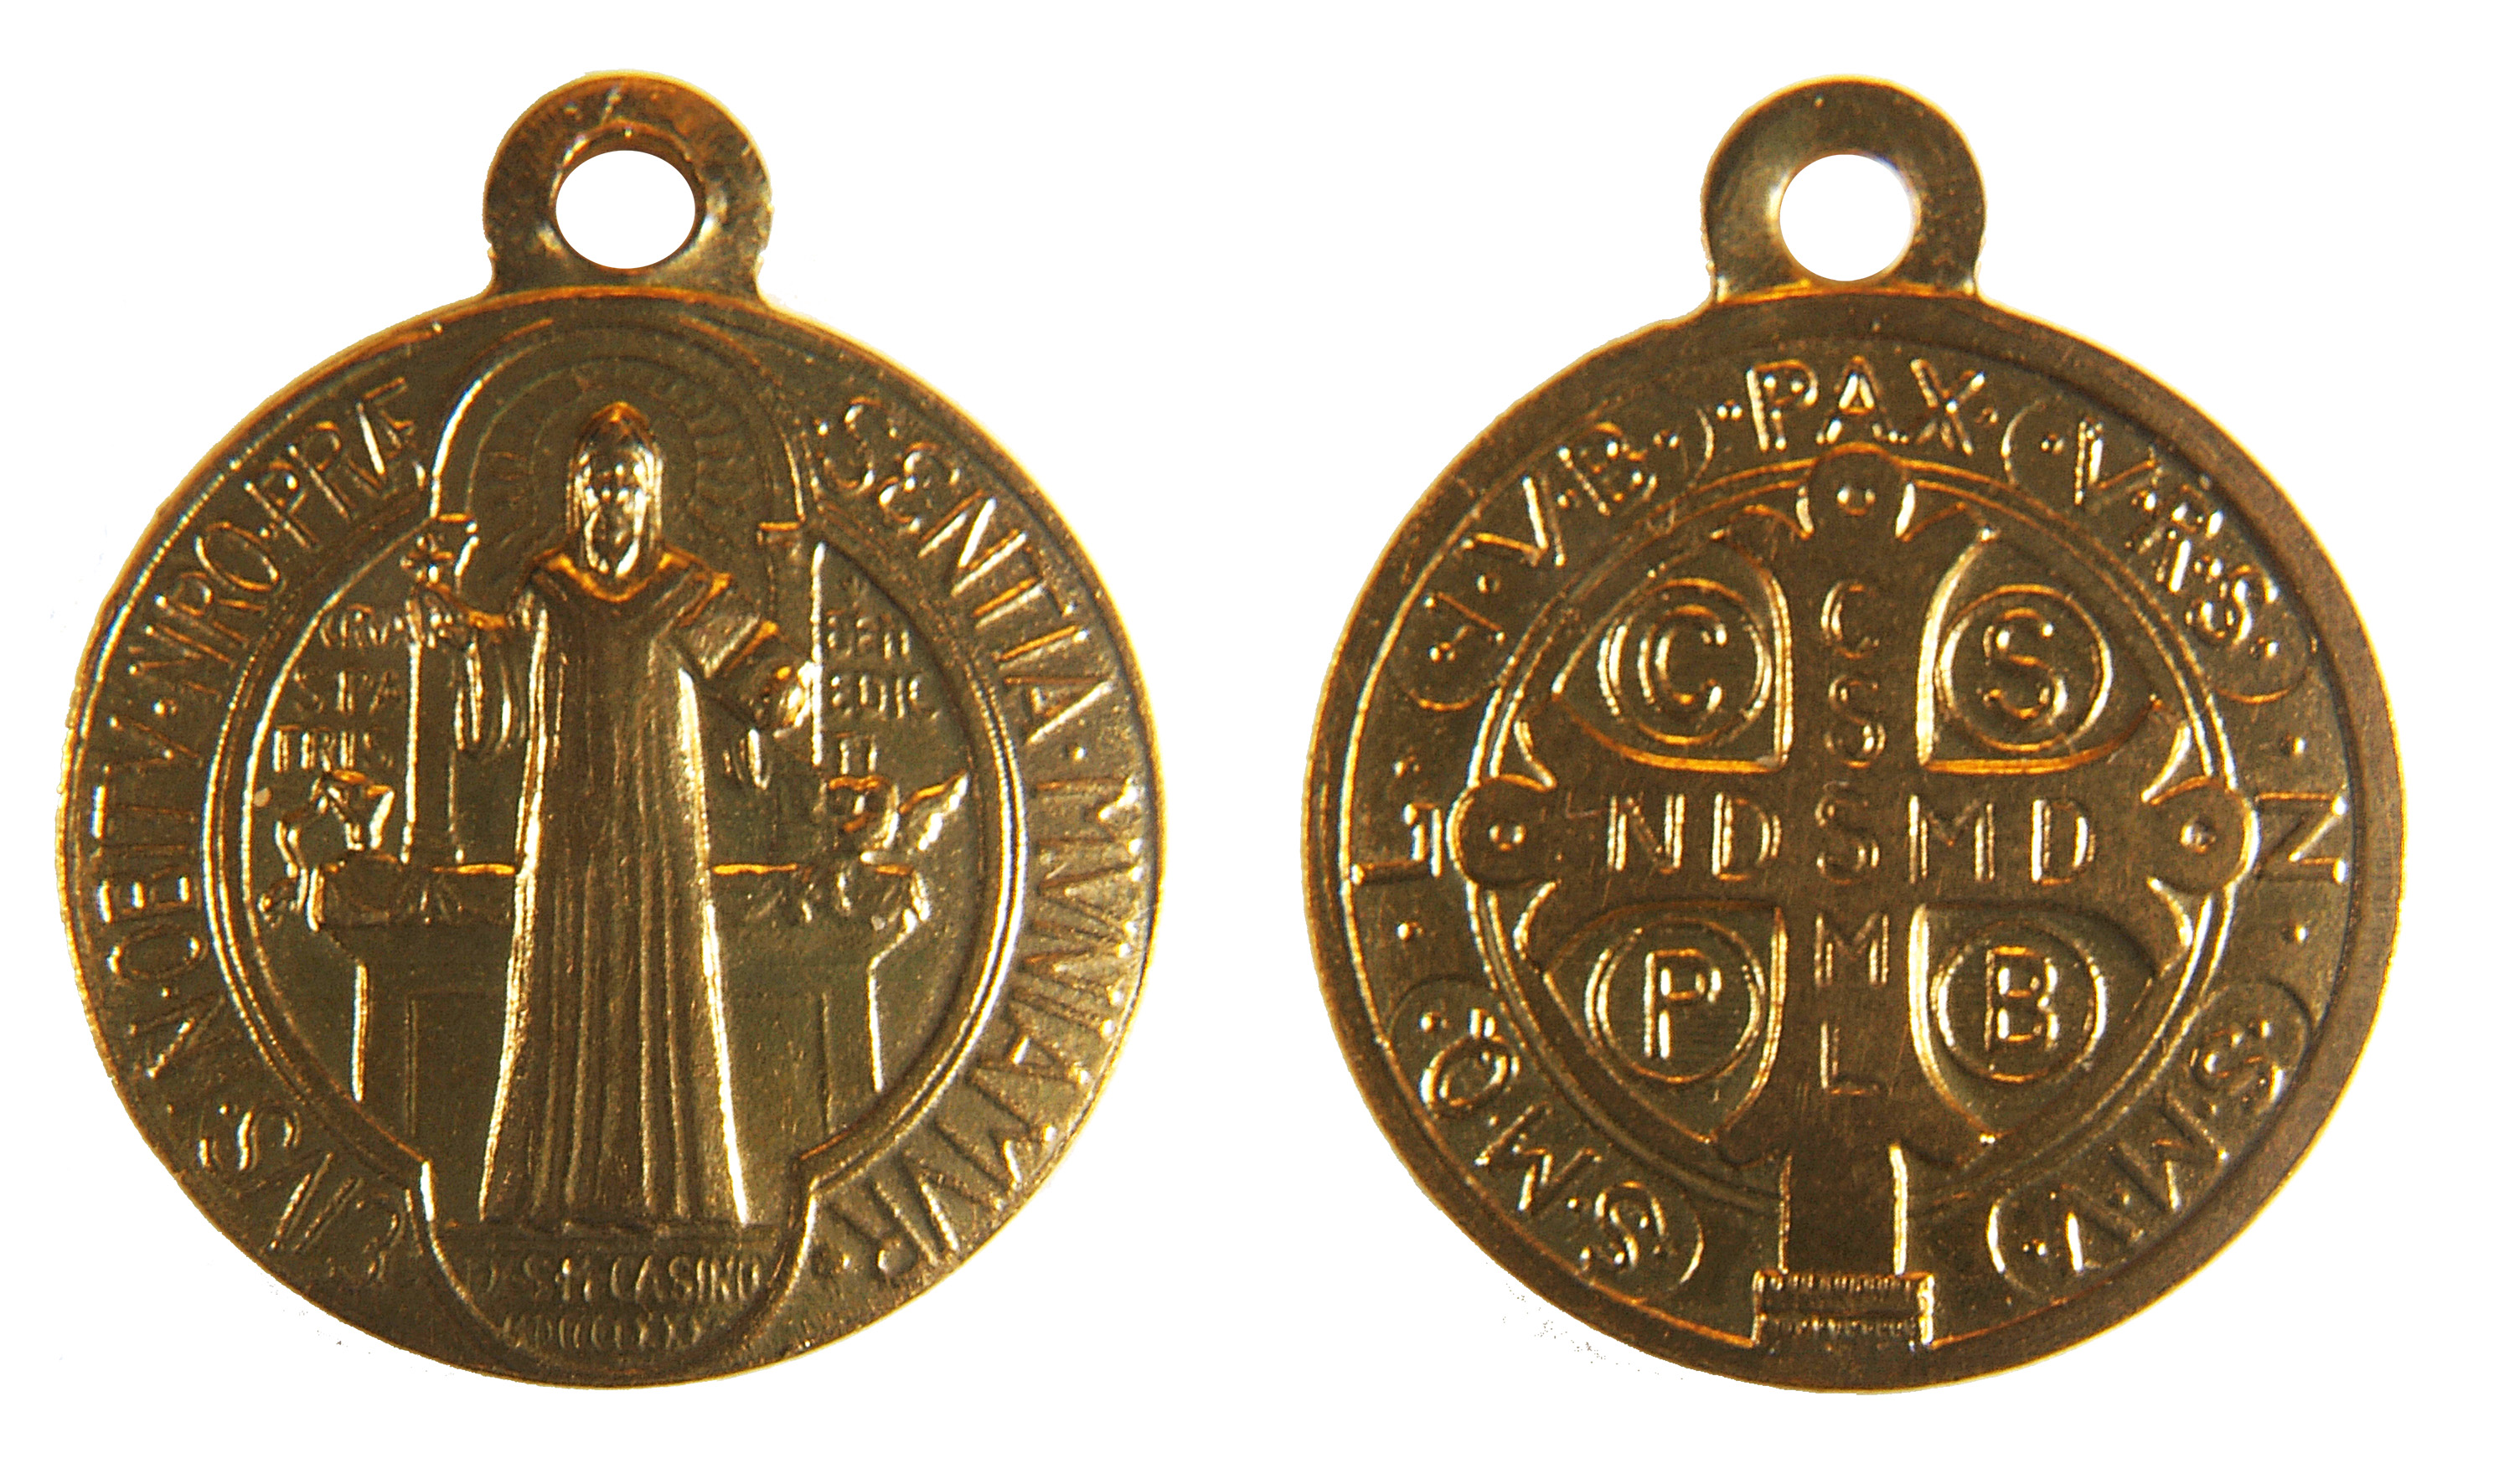 saint cards mary books gold vermeil gift medal saintes more oils magdalene medals medallion saintesarah maries shop